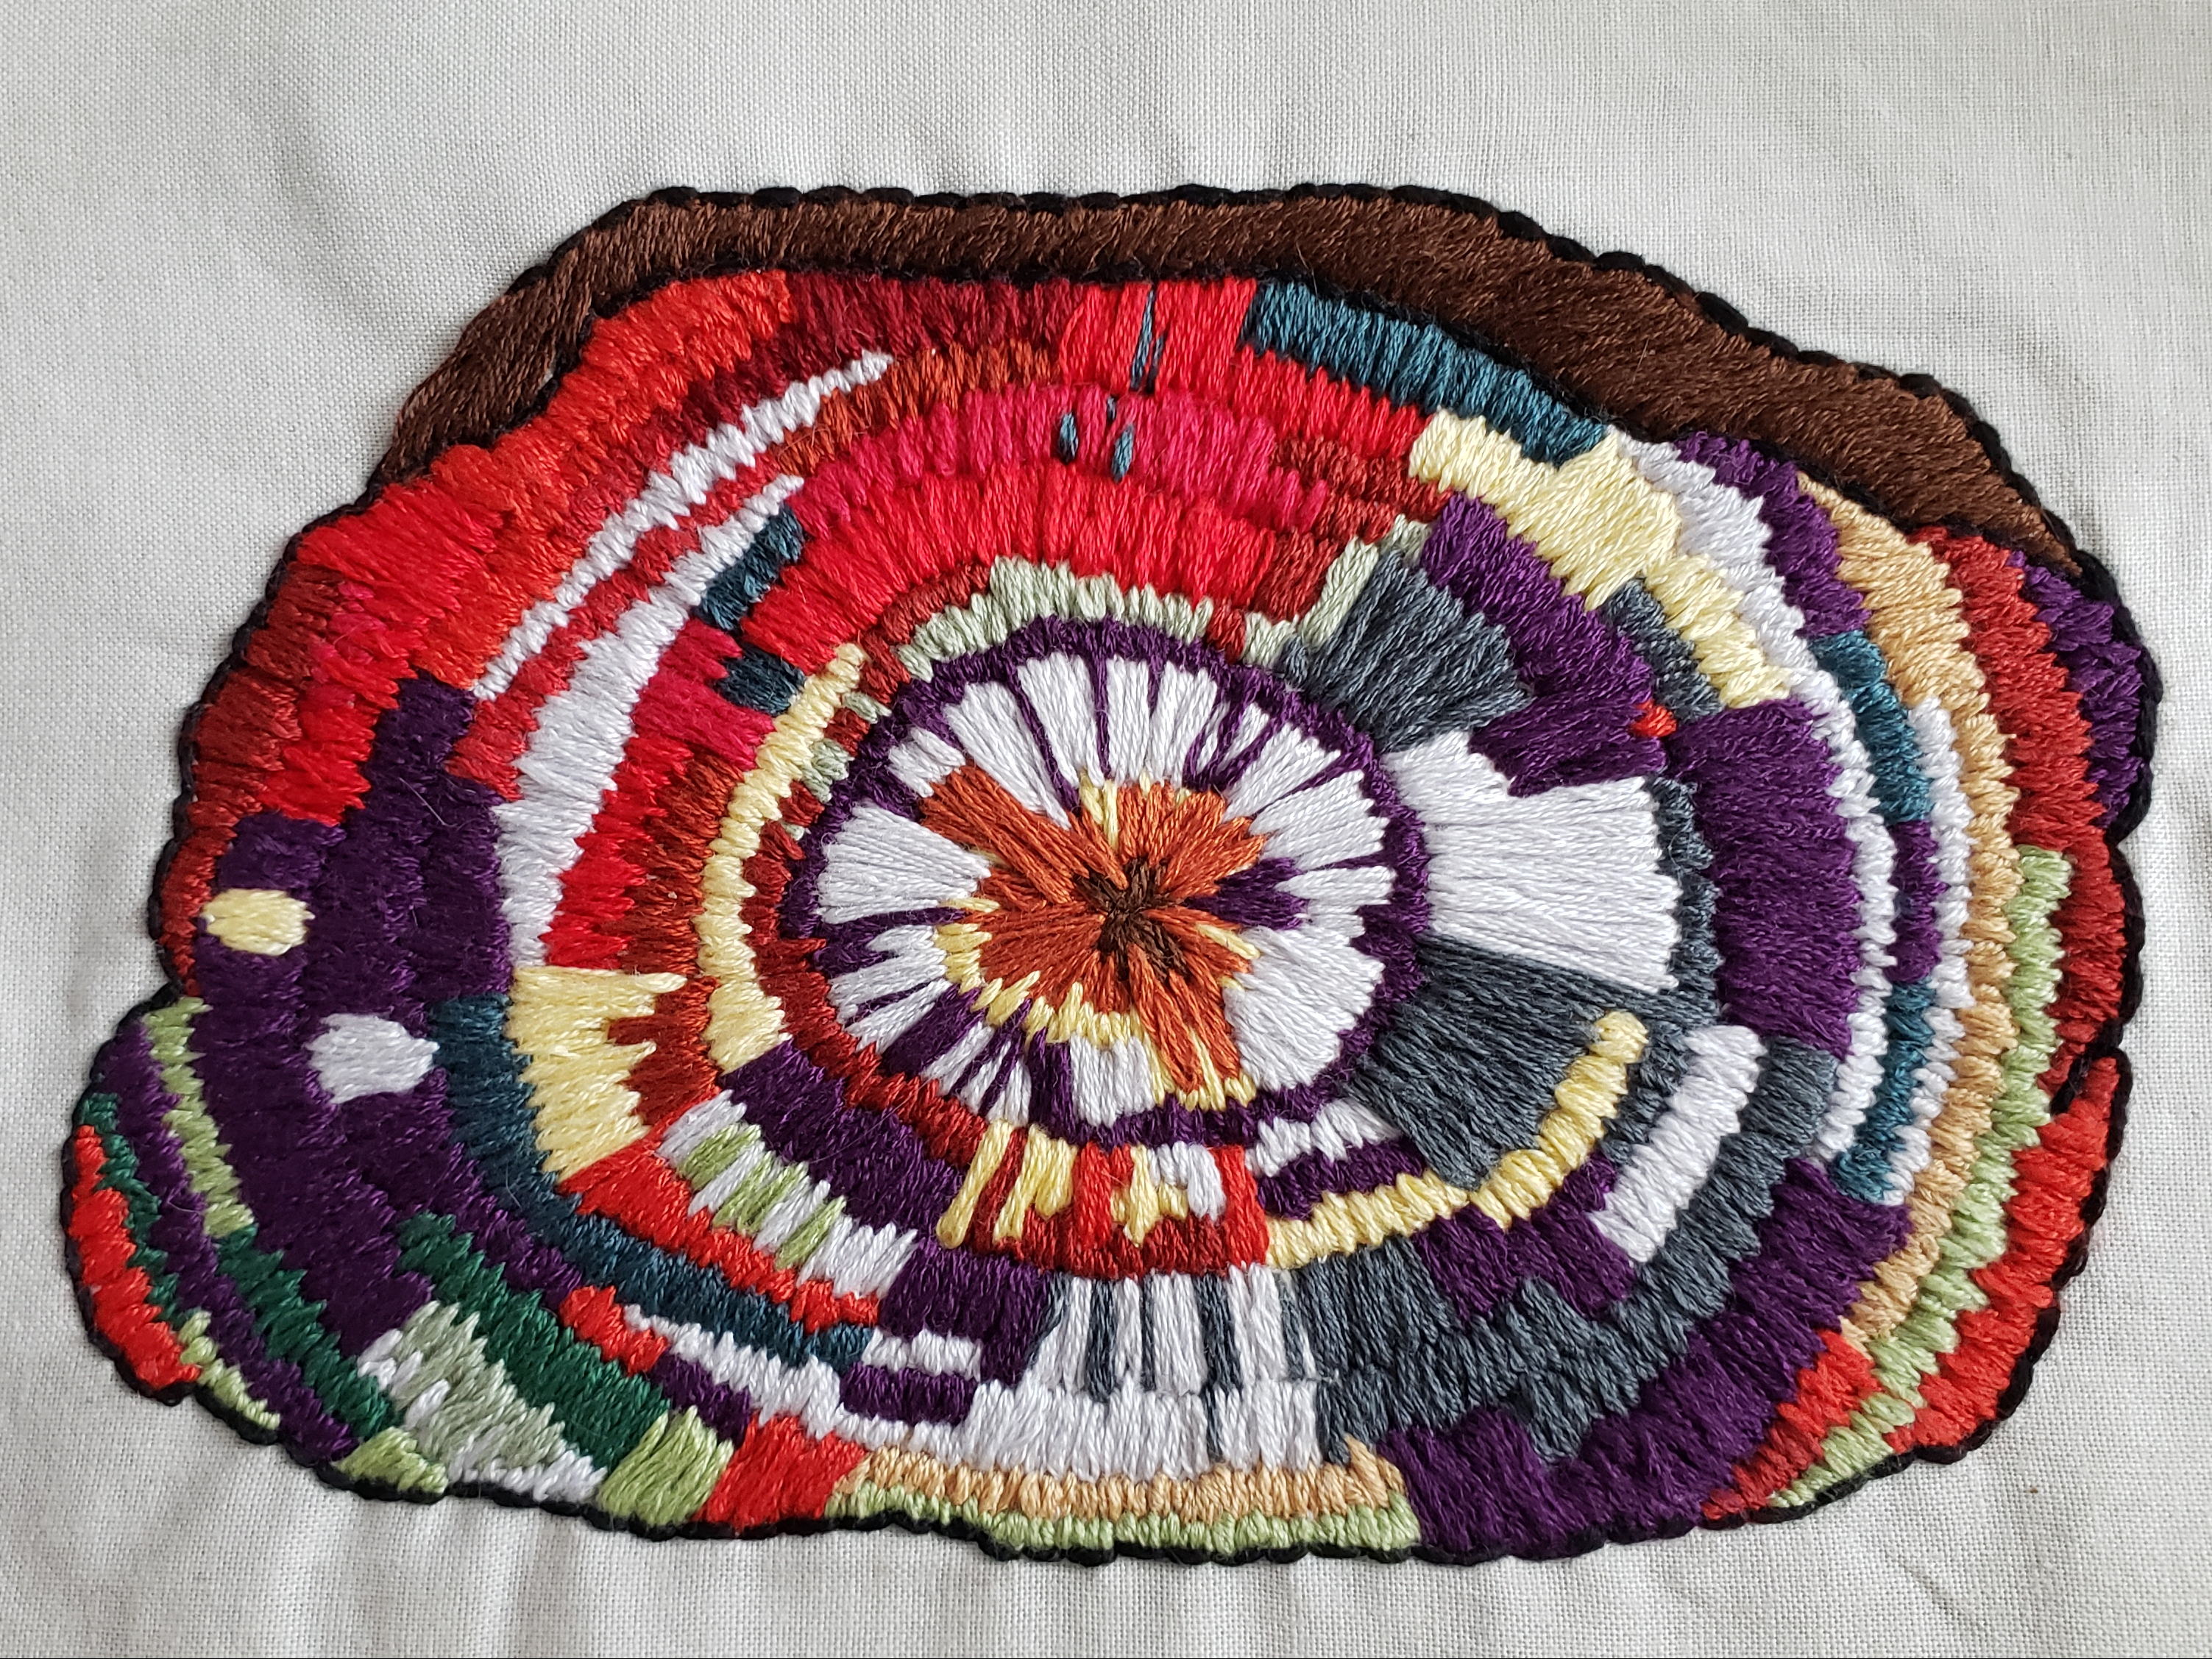 An embroidered interpretation of a cross section of a petrified tree trunk. Different coloured threads represent different minerals that grew within tree rings. Most prominent are reds, purples, and whites. The colourful piece sits on a white background.